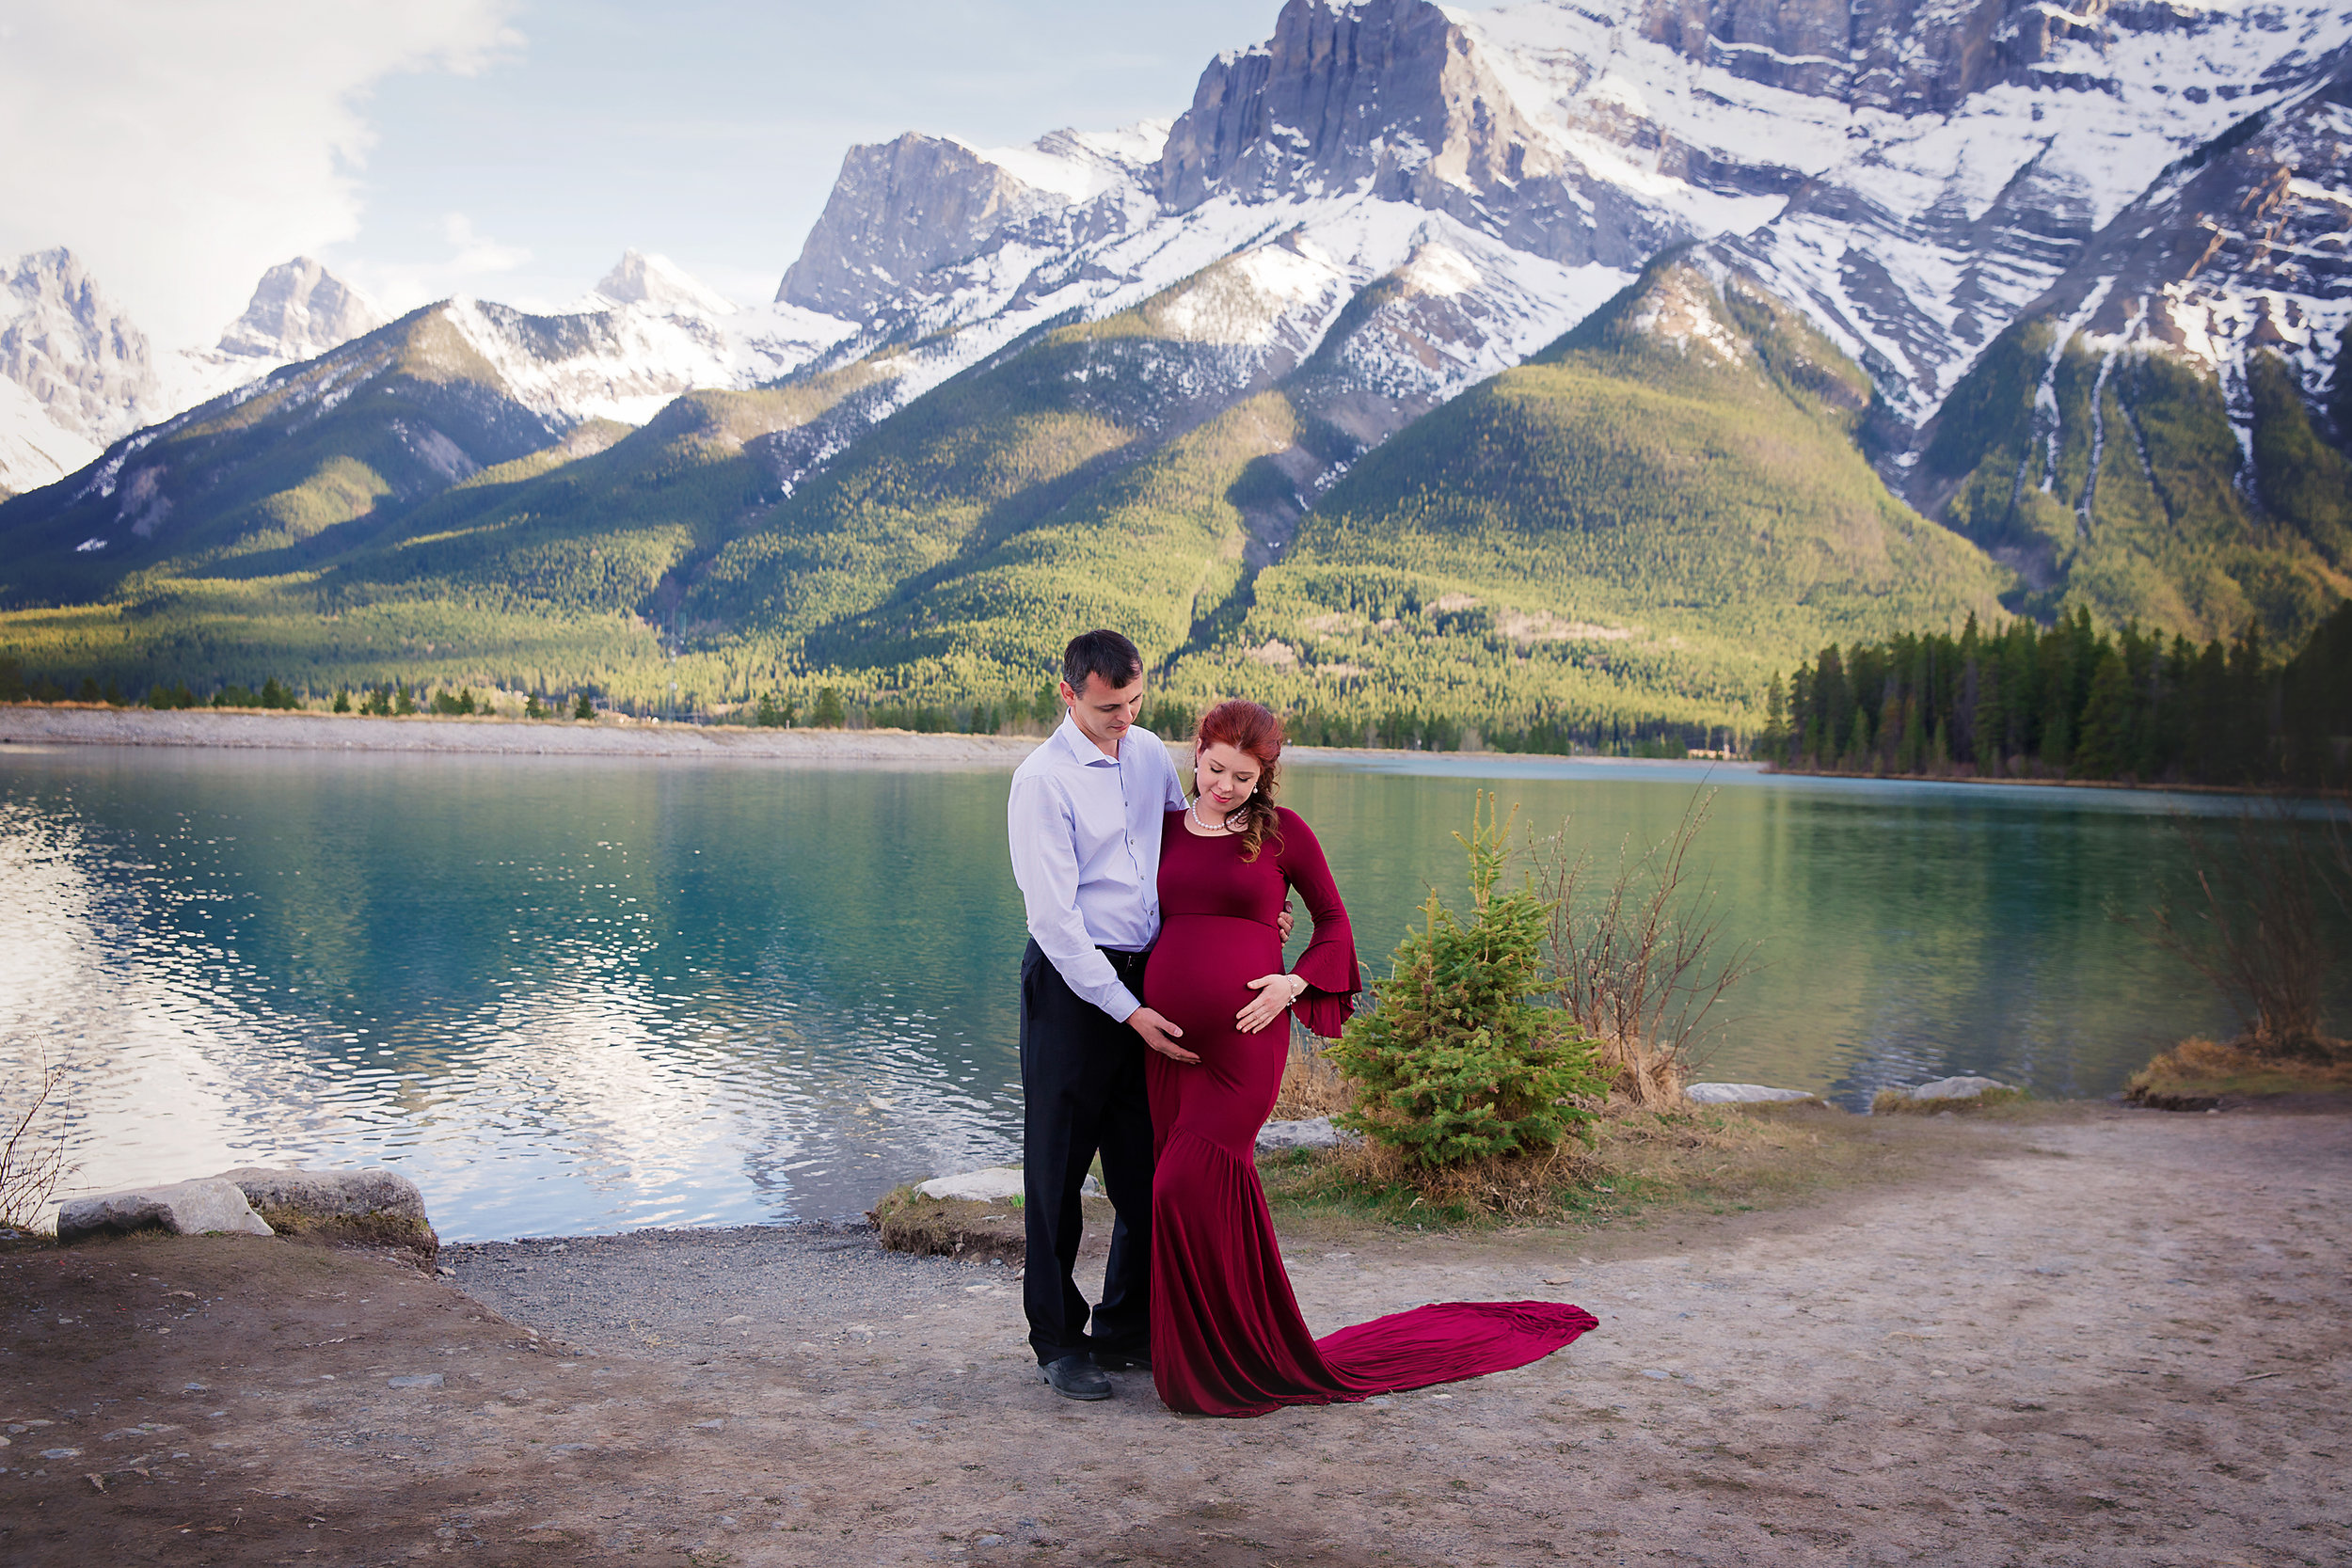 Parents to be in the mountain maternity session. Mama is wearing a red gown.